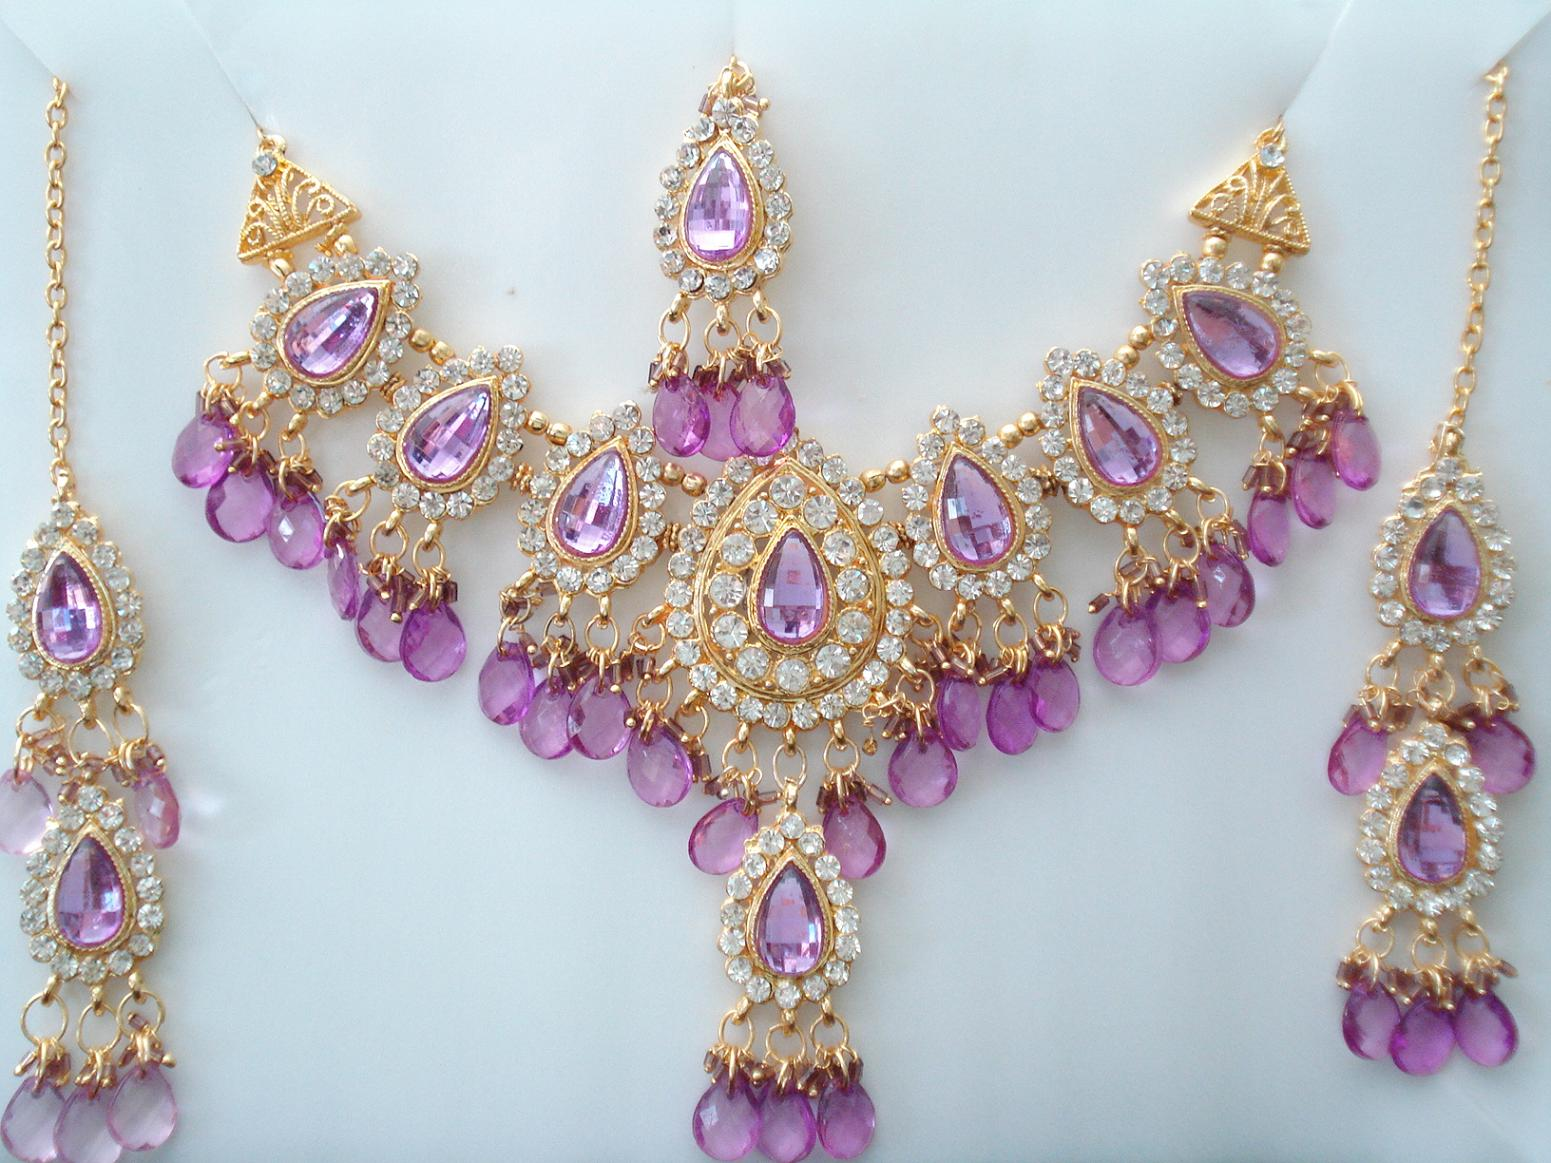 Fusion Jewels - Indian Imitation Kundan Jewellery, Wedding Fashion